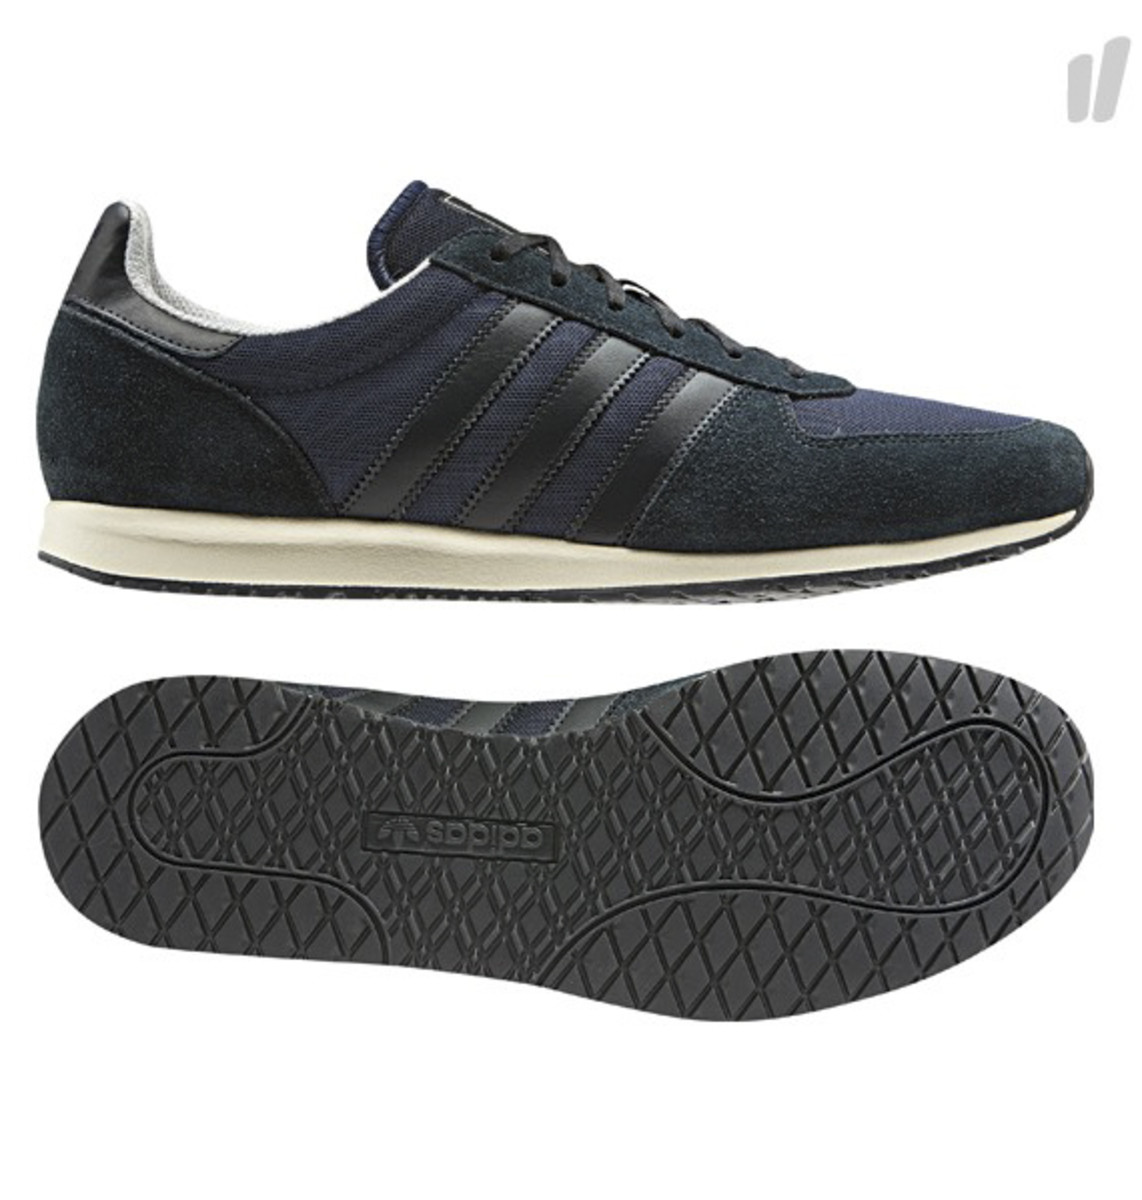 adidas-originals-fall-winter-footwear-collection-preview-05